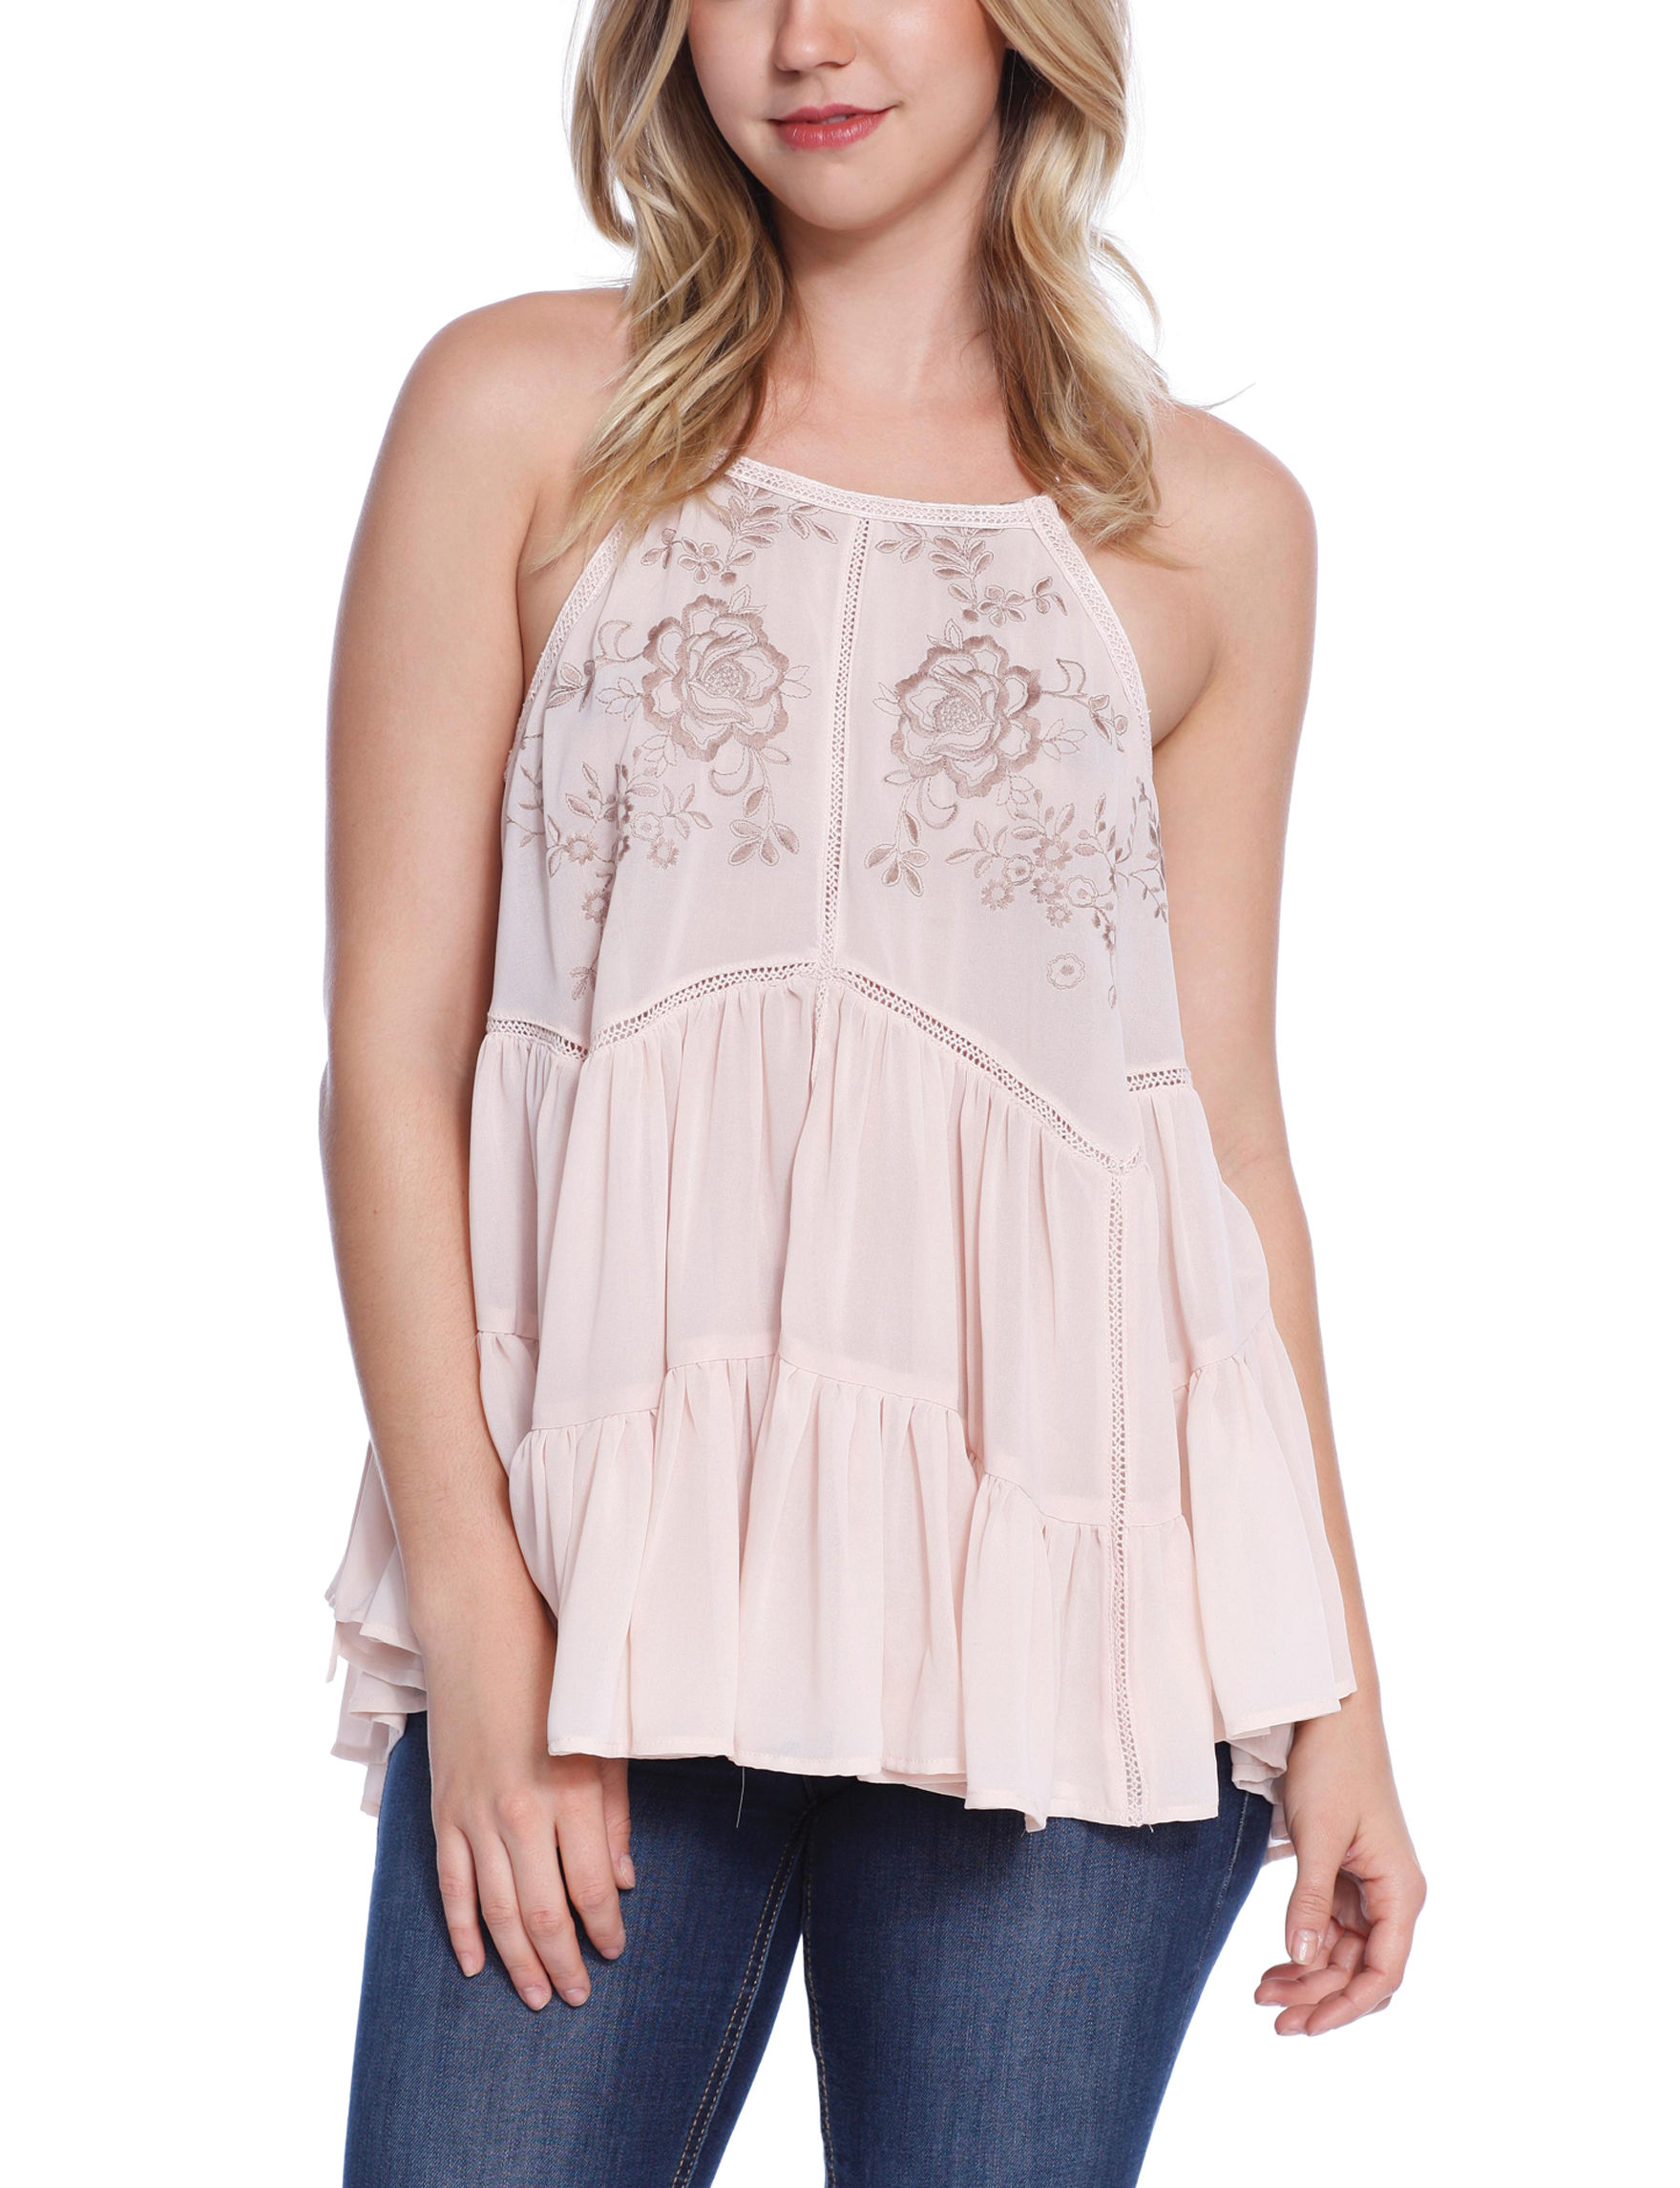 C + J Collections Pink Shirts & Blouses Tees & Tanks